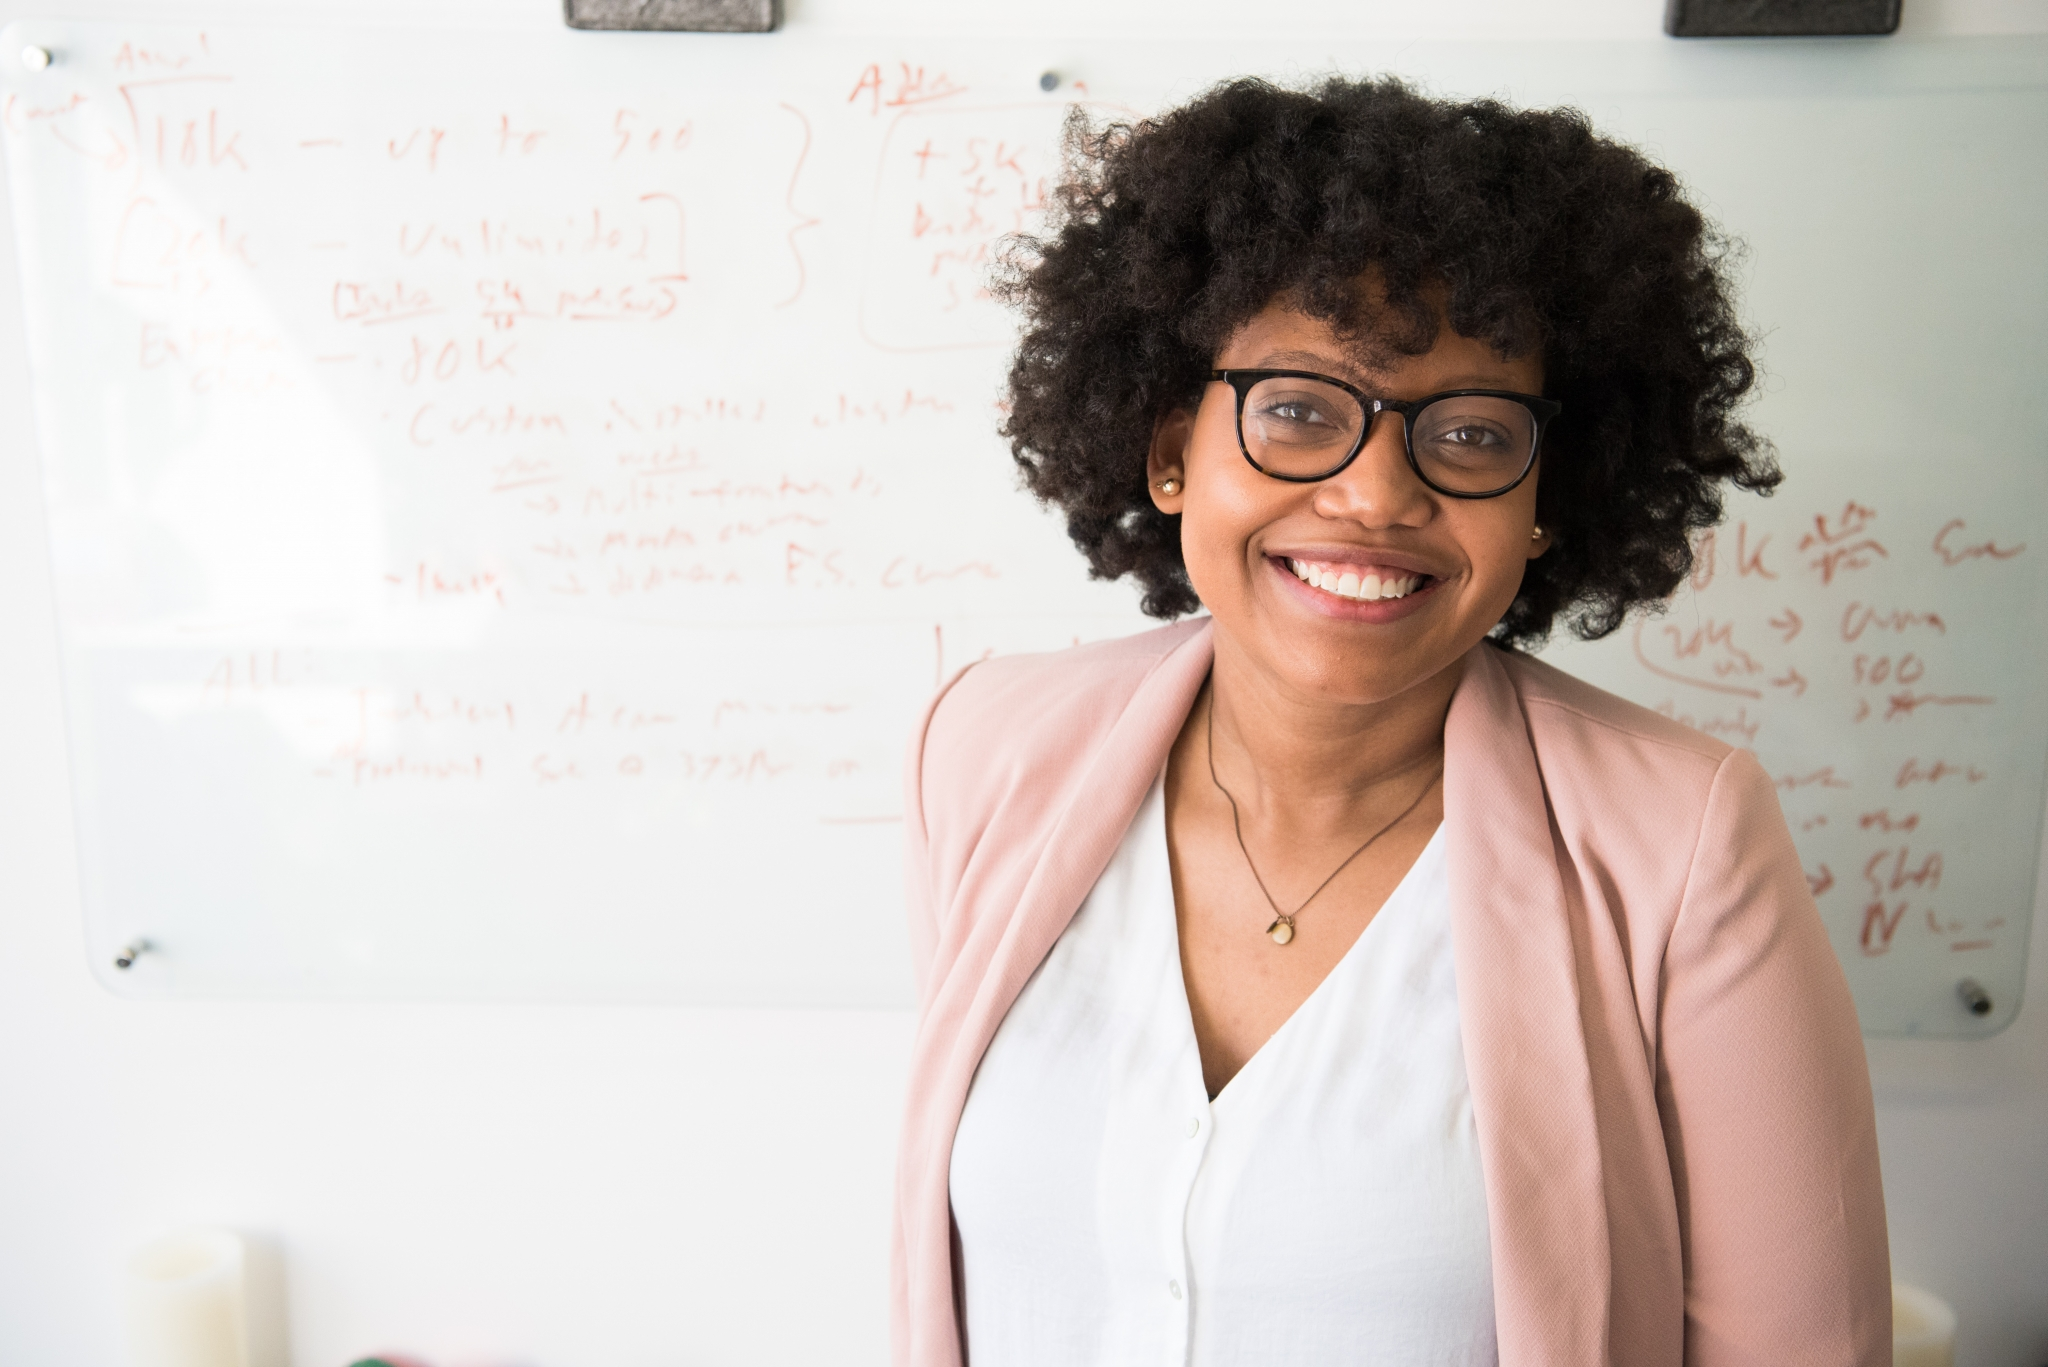 Smiling woman in front of a whiteboard